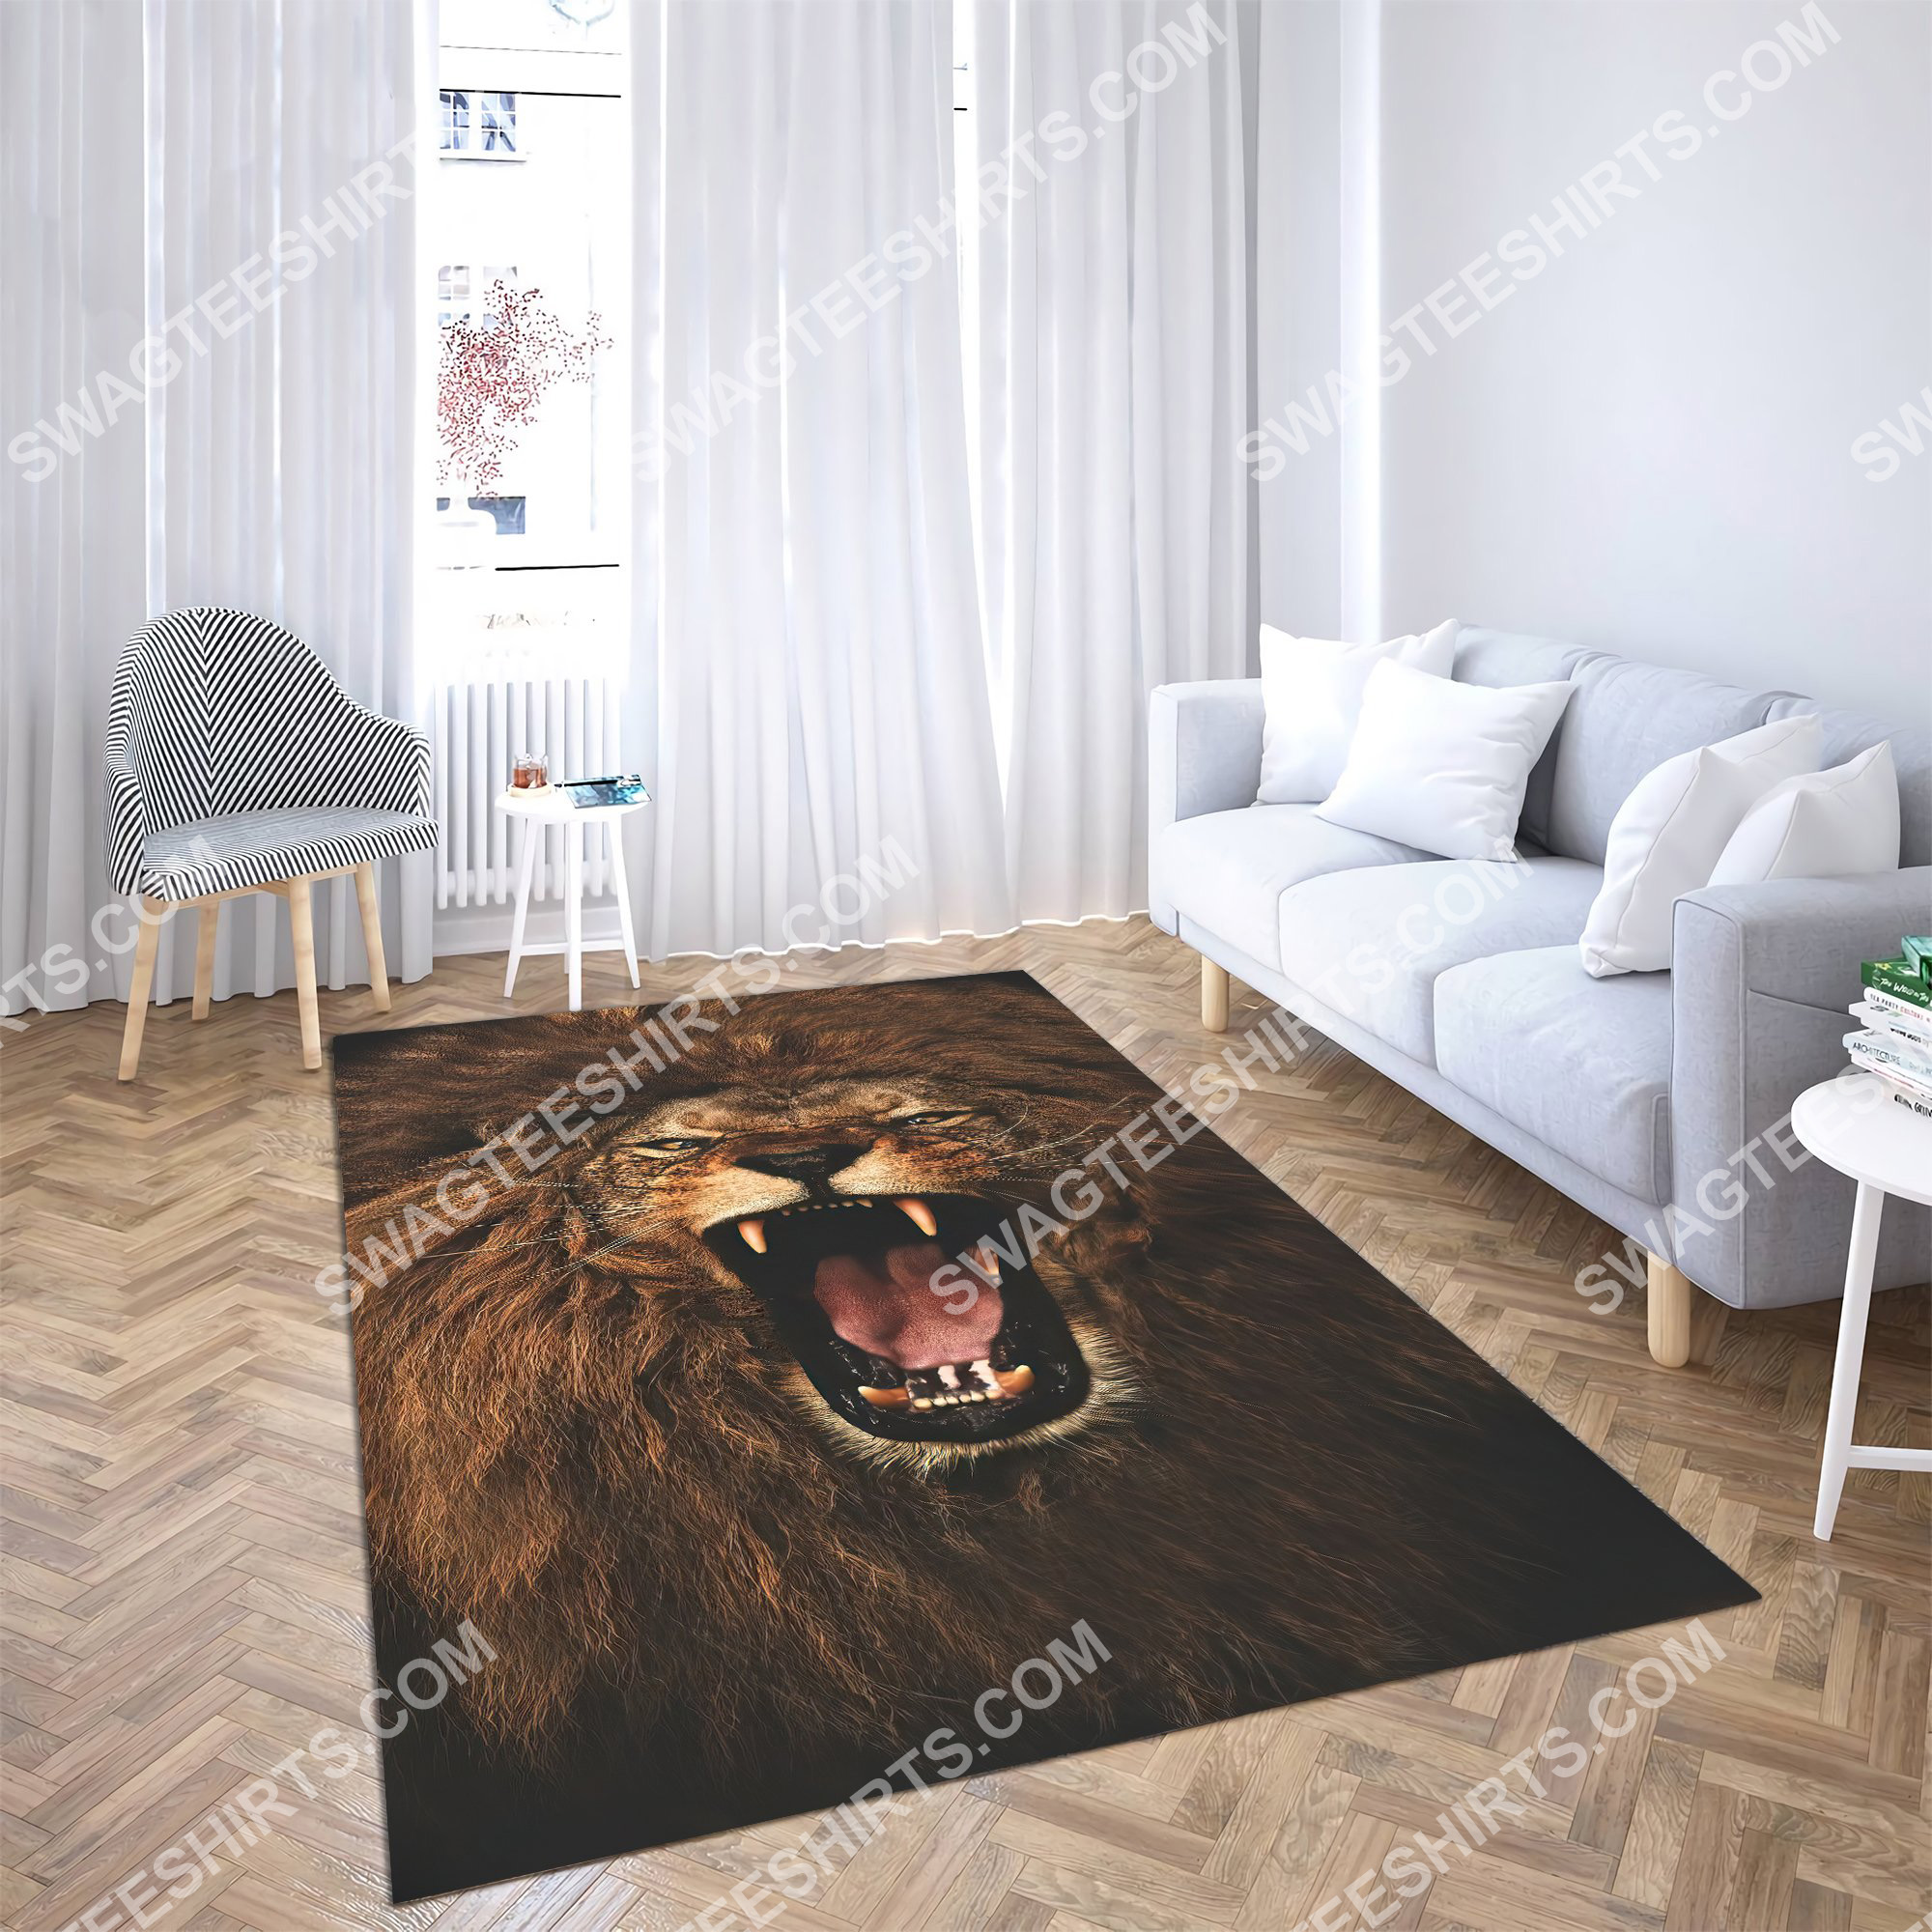 the alpha king lion all over printed rug 3(1)